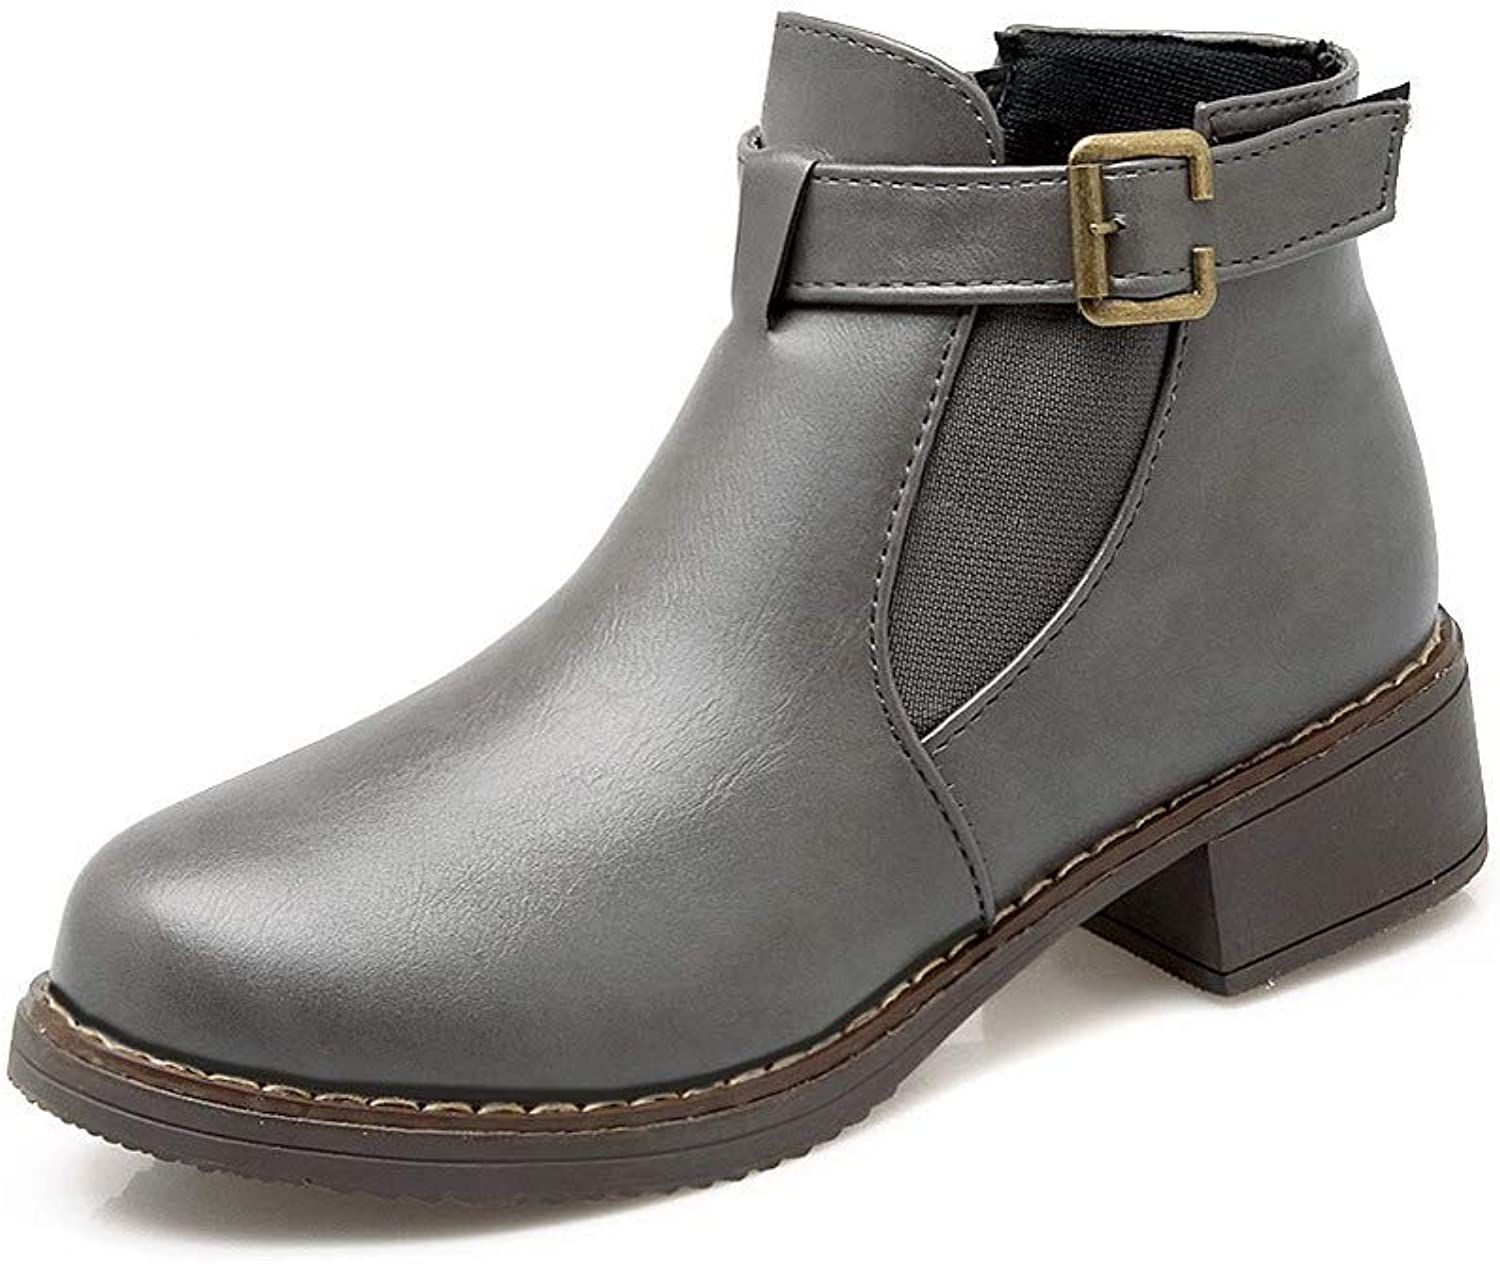 WeiPoot Women's pu Ankle-High Solid Pull-On Low-Heels Boots, EGHXG030883